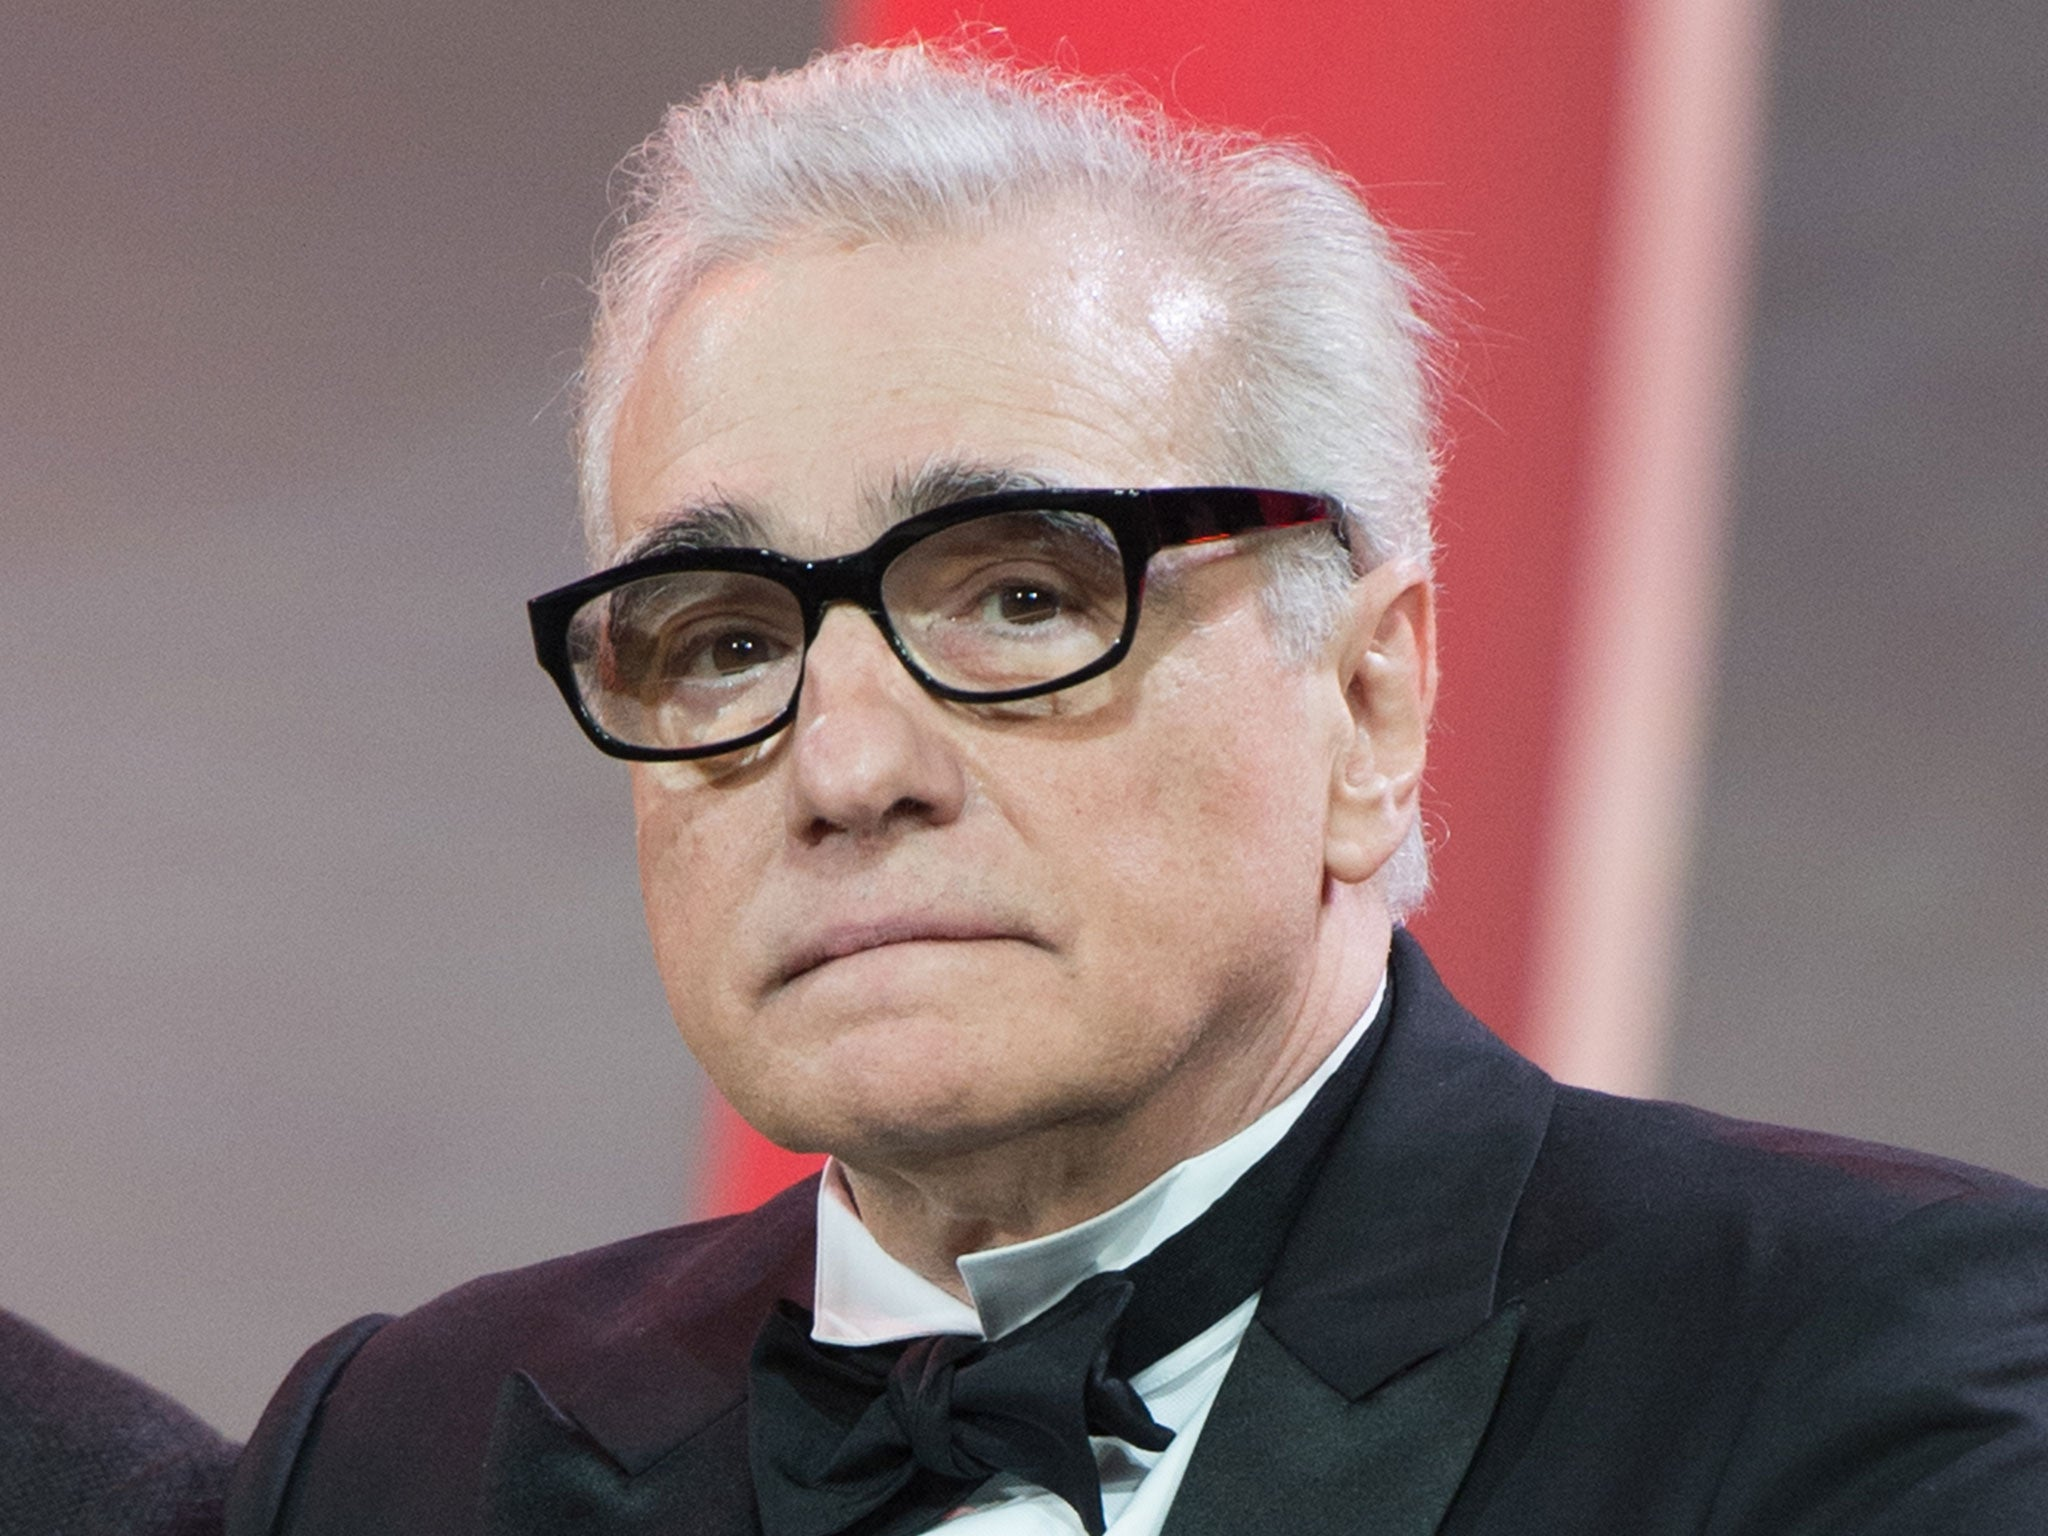 Martin Scorsese | All the action from the casino floor: news, views and more